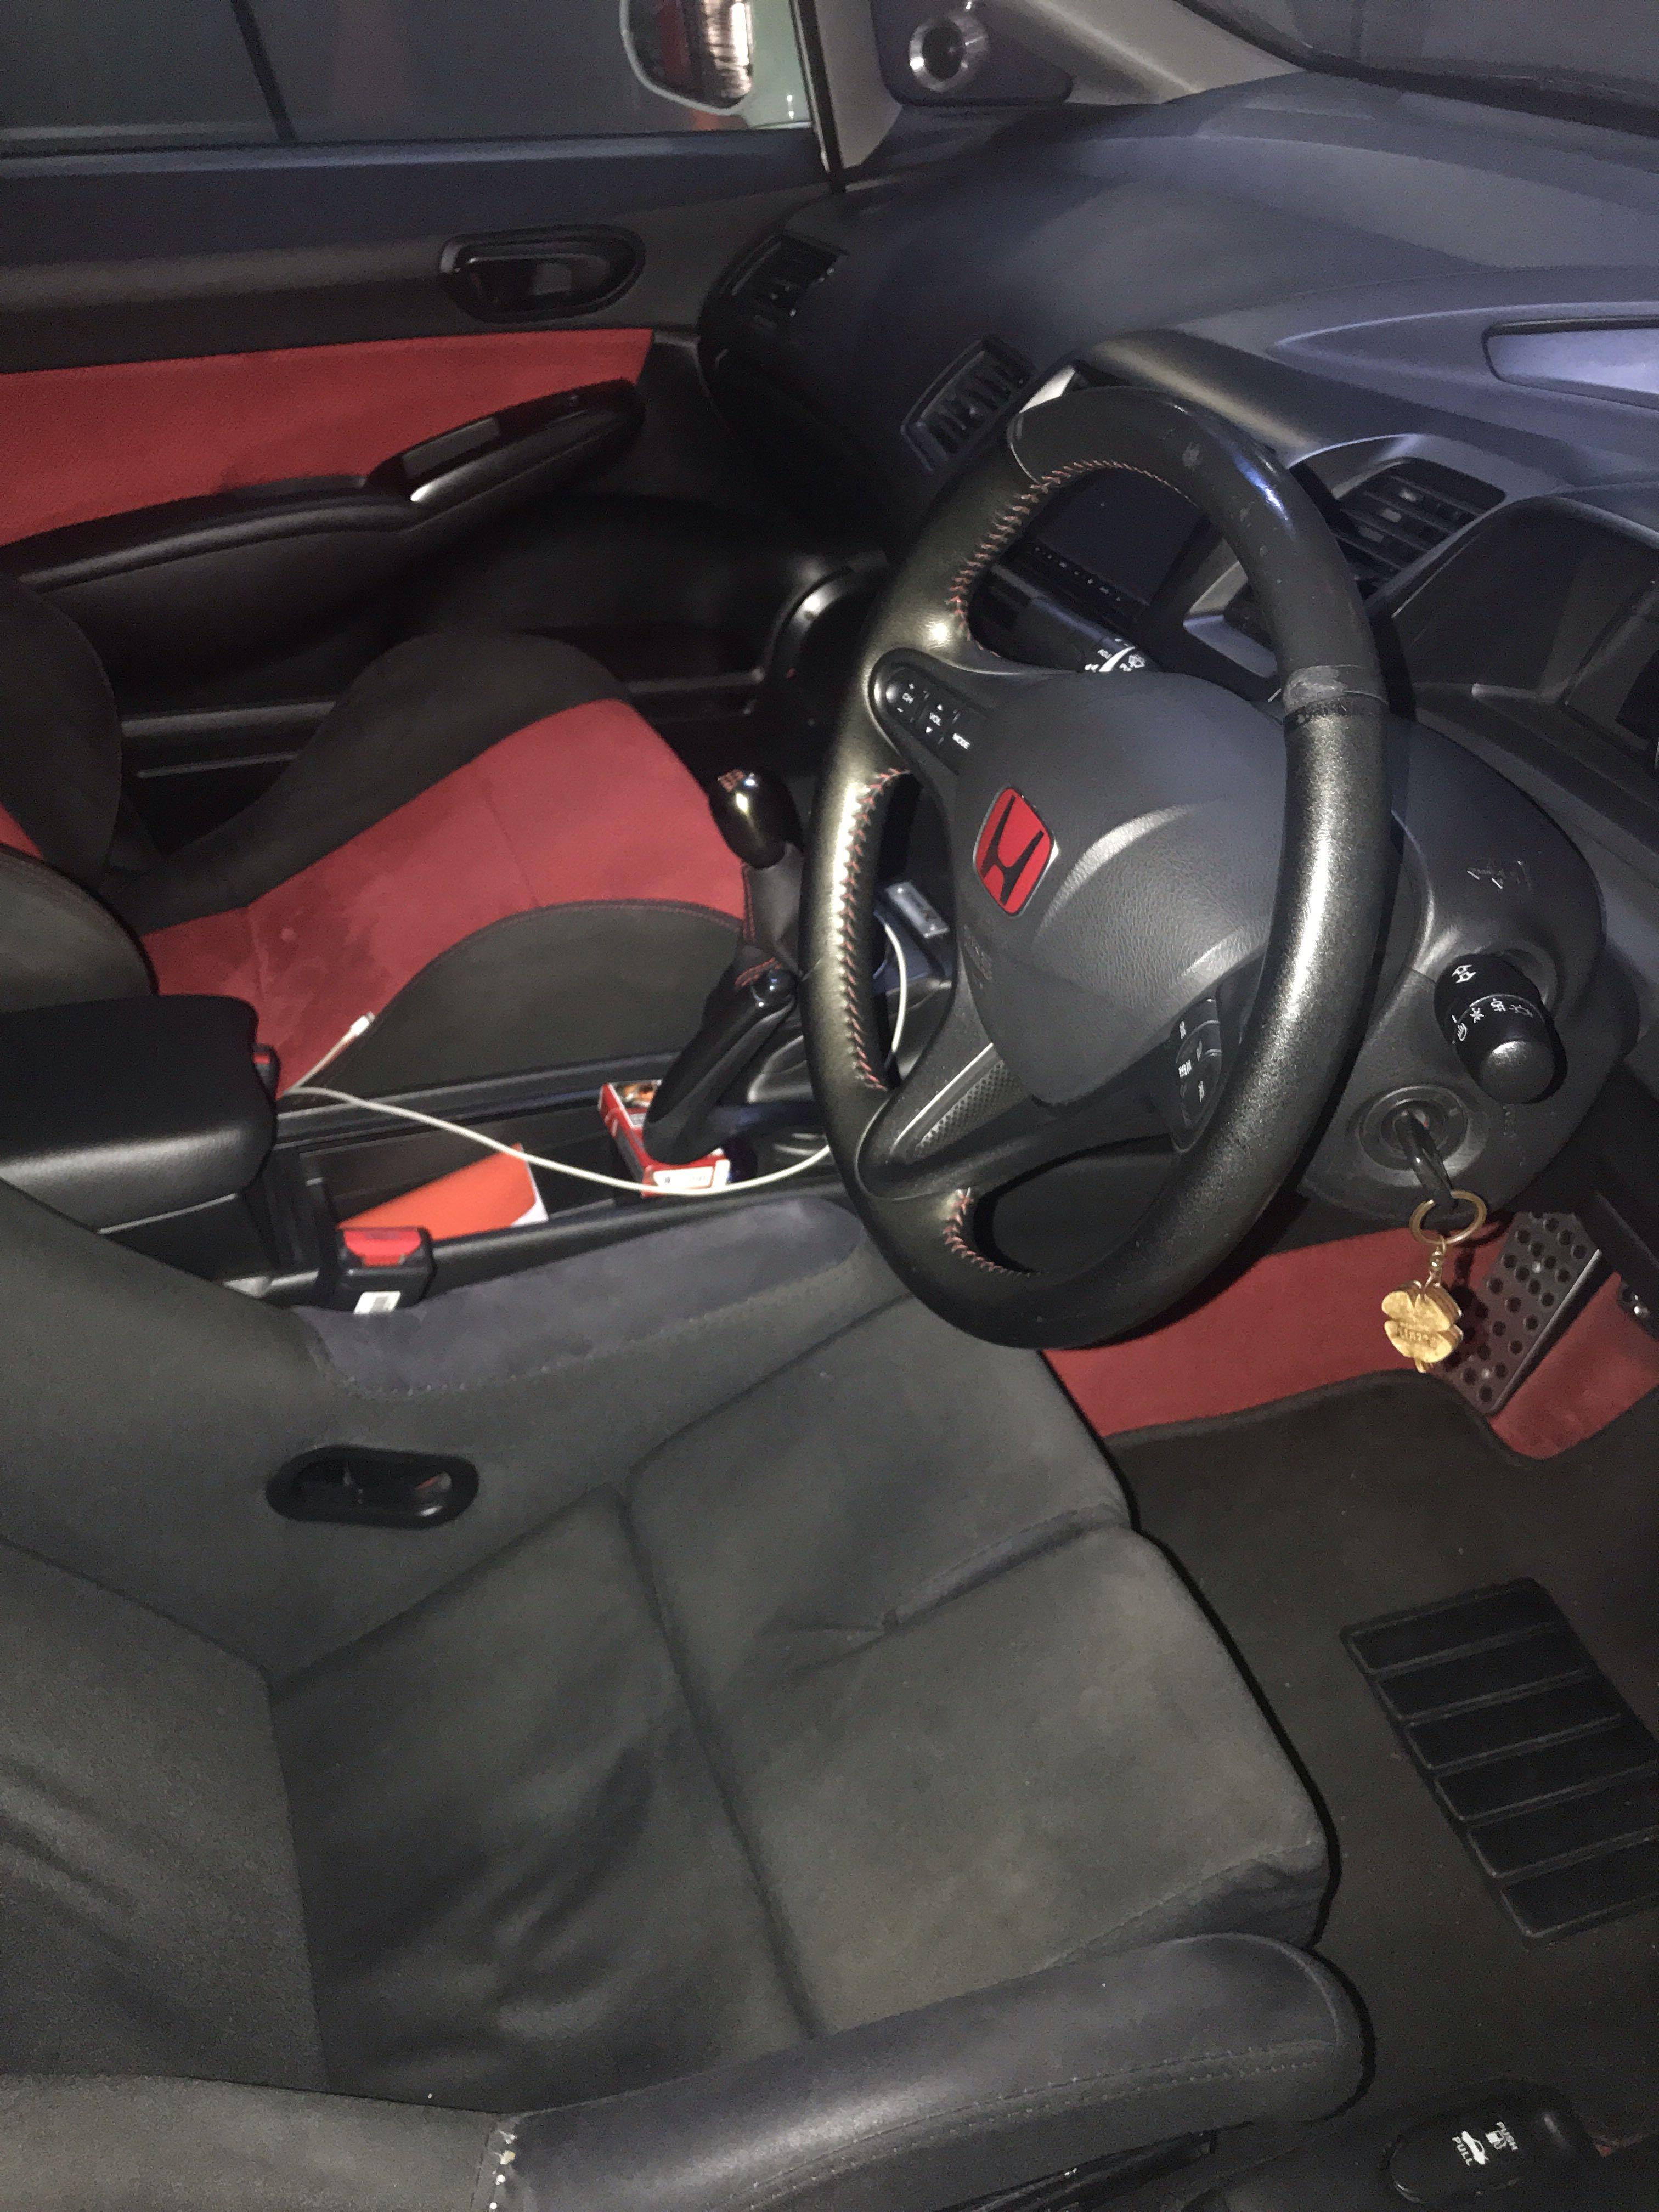 Honda Civic 2.0 Type R 2.0 i-VTEC Manual